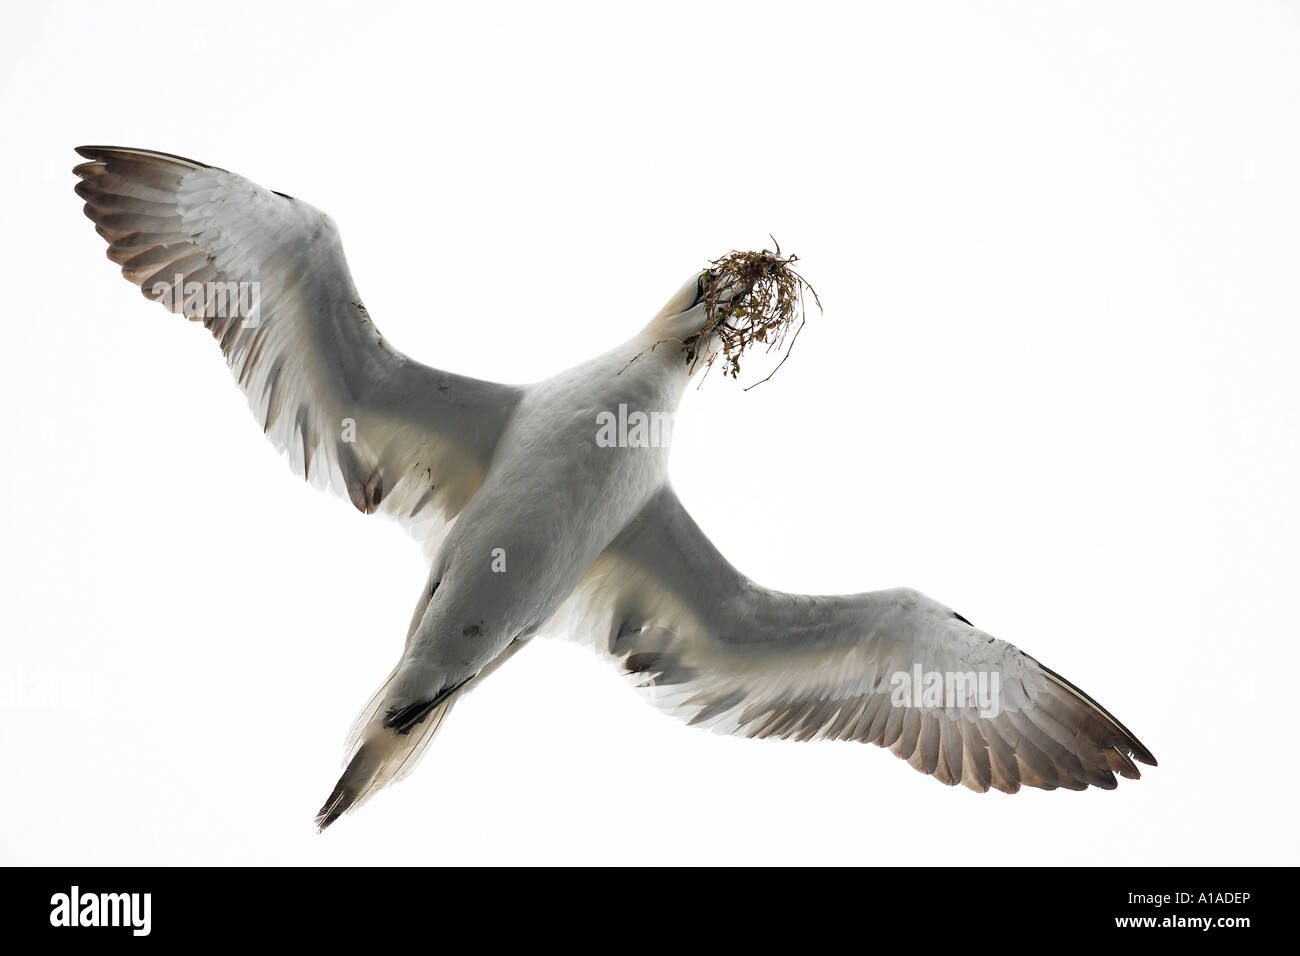 Gannet at flight with nesting material in his beak (Sula bassana) Saltee Islands, Ireland - Stock Image